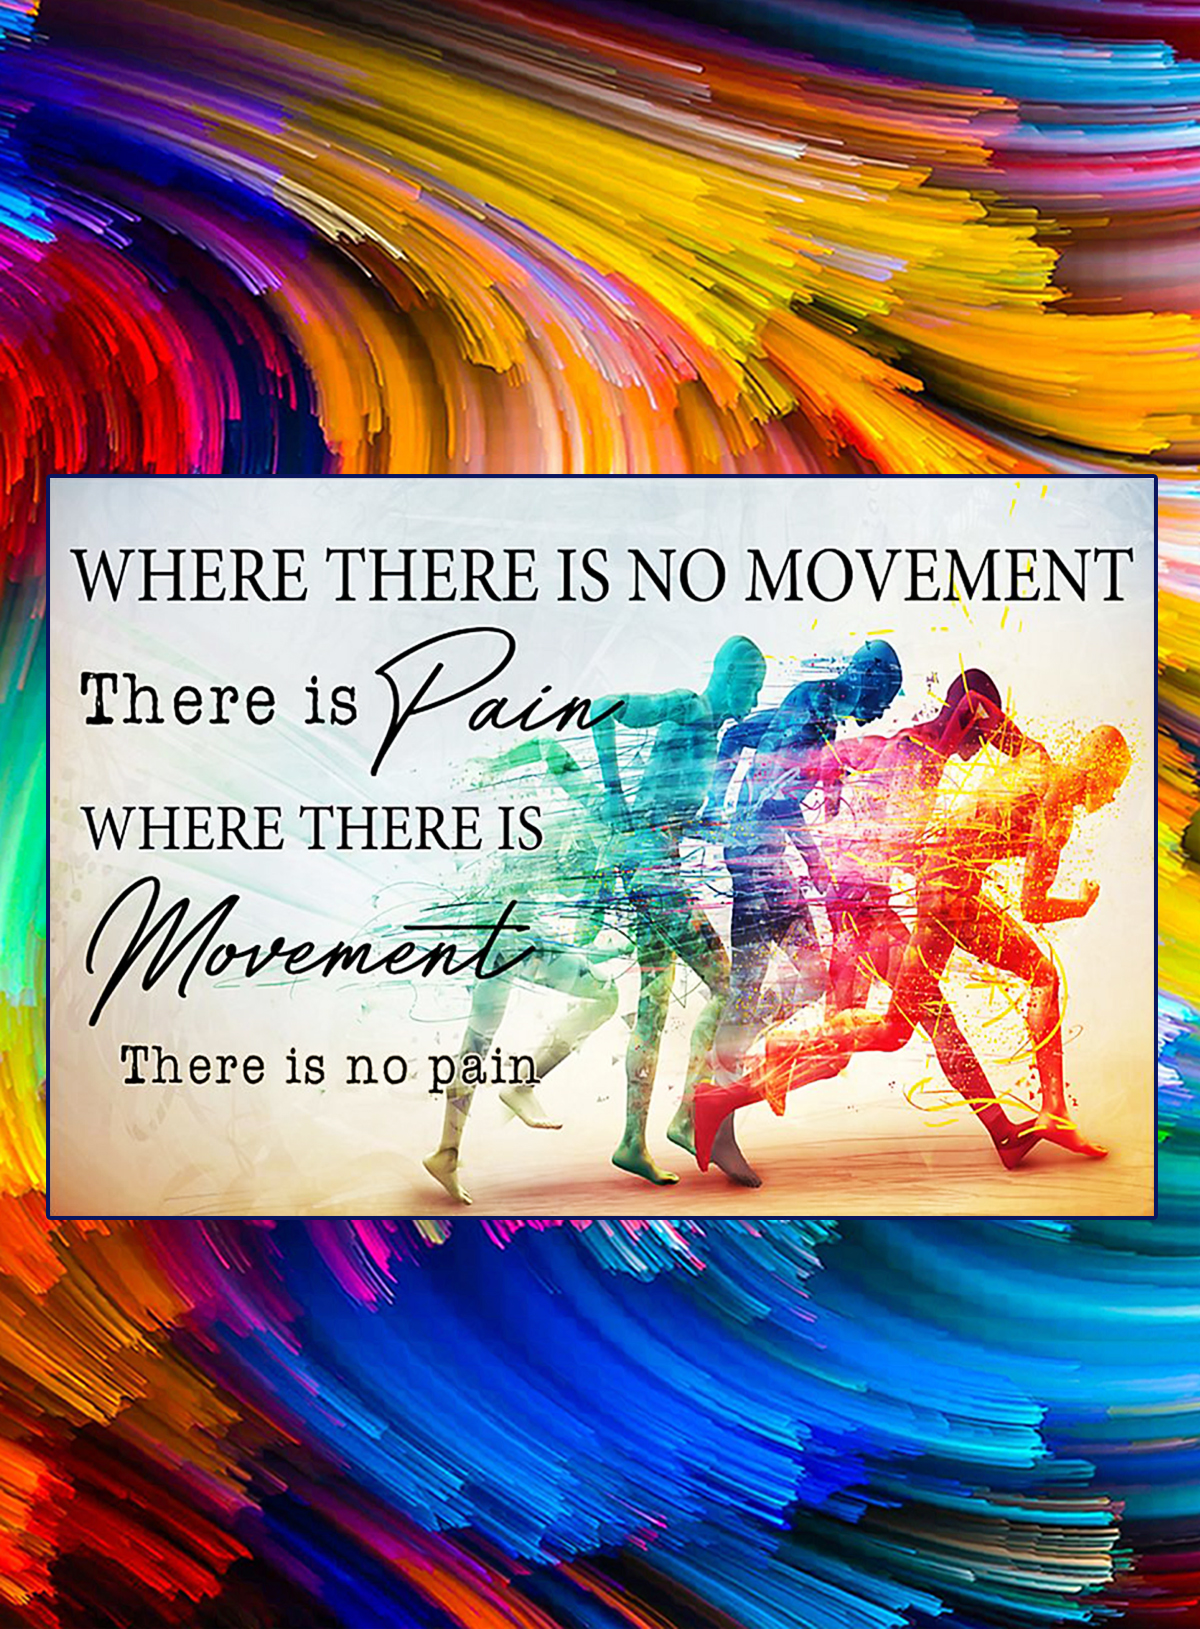 Where there is no movement there is pain where there is movement there is no pain poster